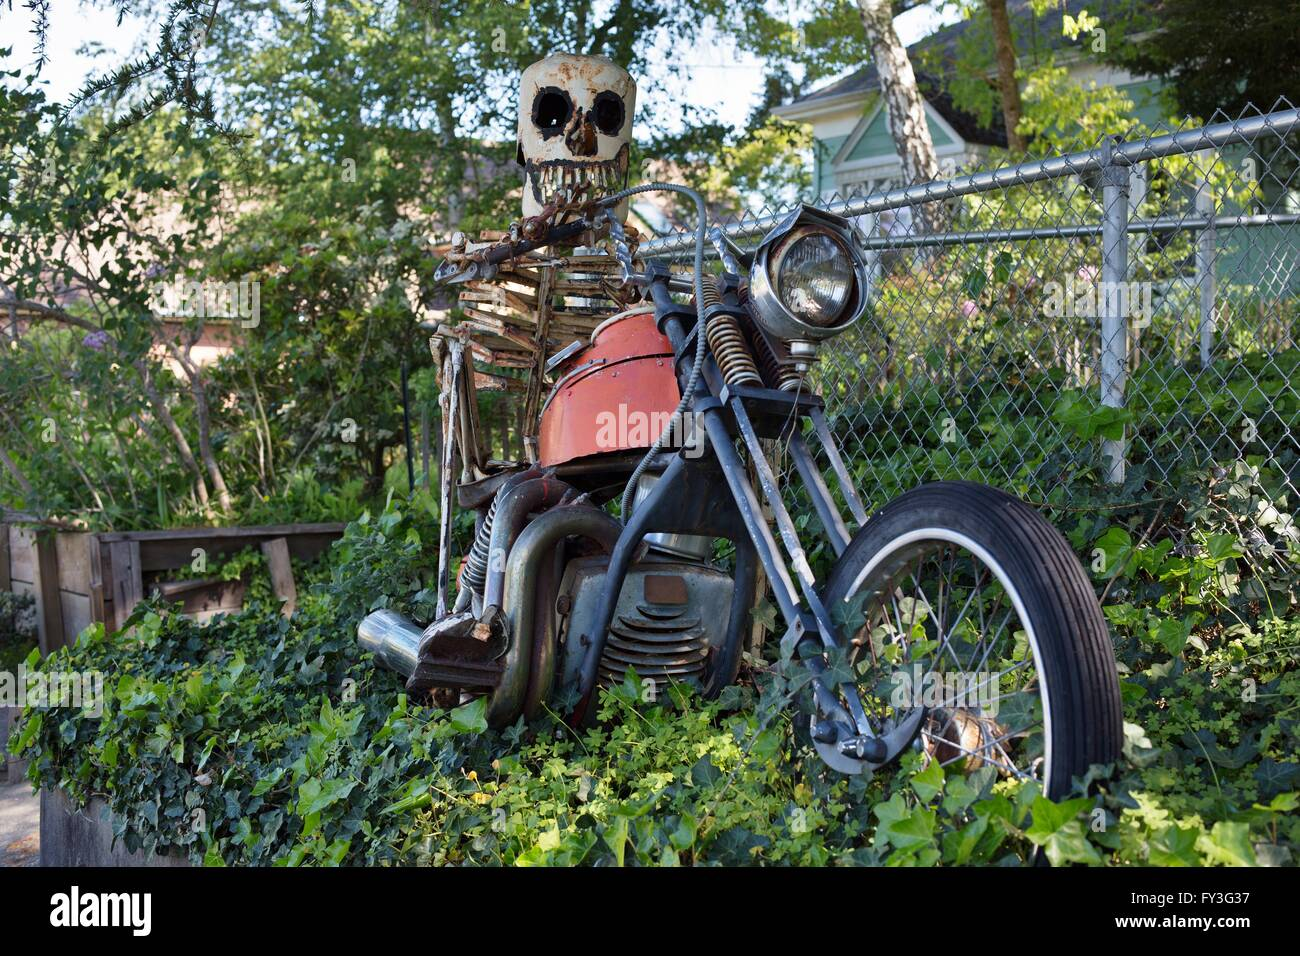 A sculpture by junk artist Patrick Amiot, in Sebastopol, California, USA. - Stock Image